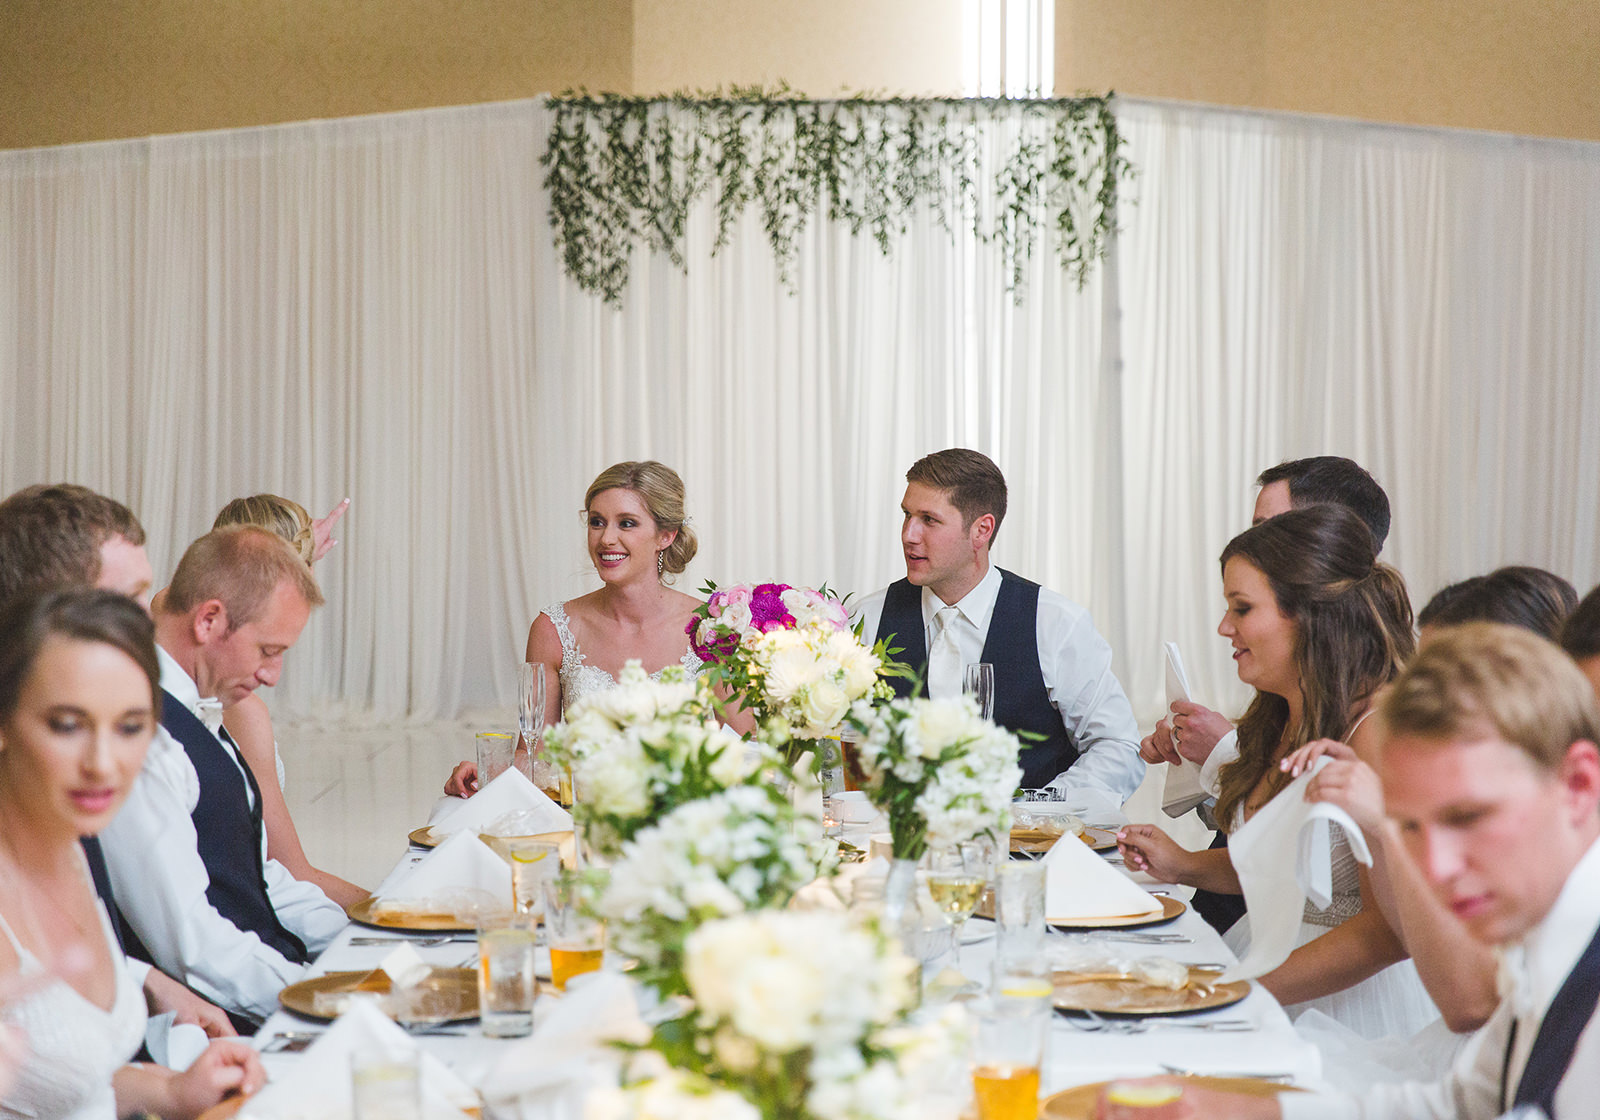 a bride and groom sit at the head of a table